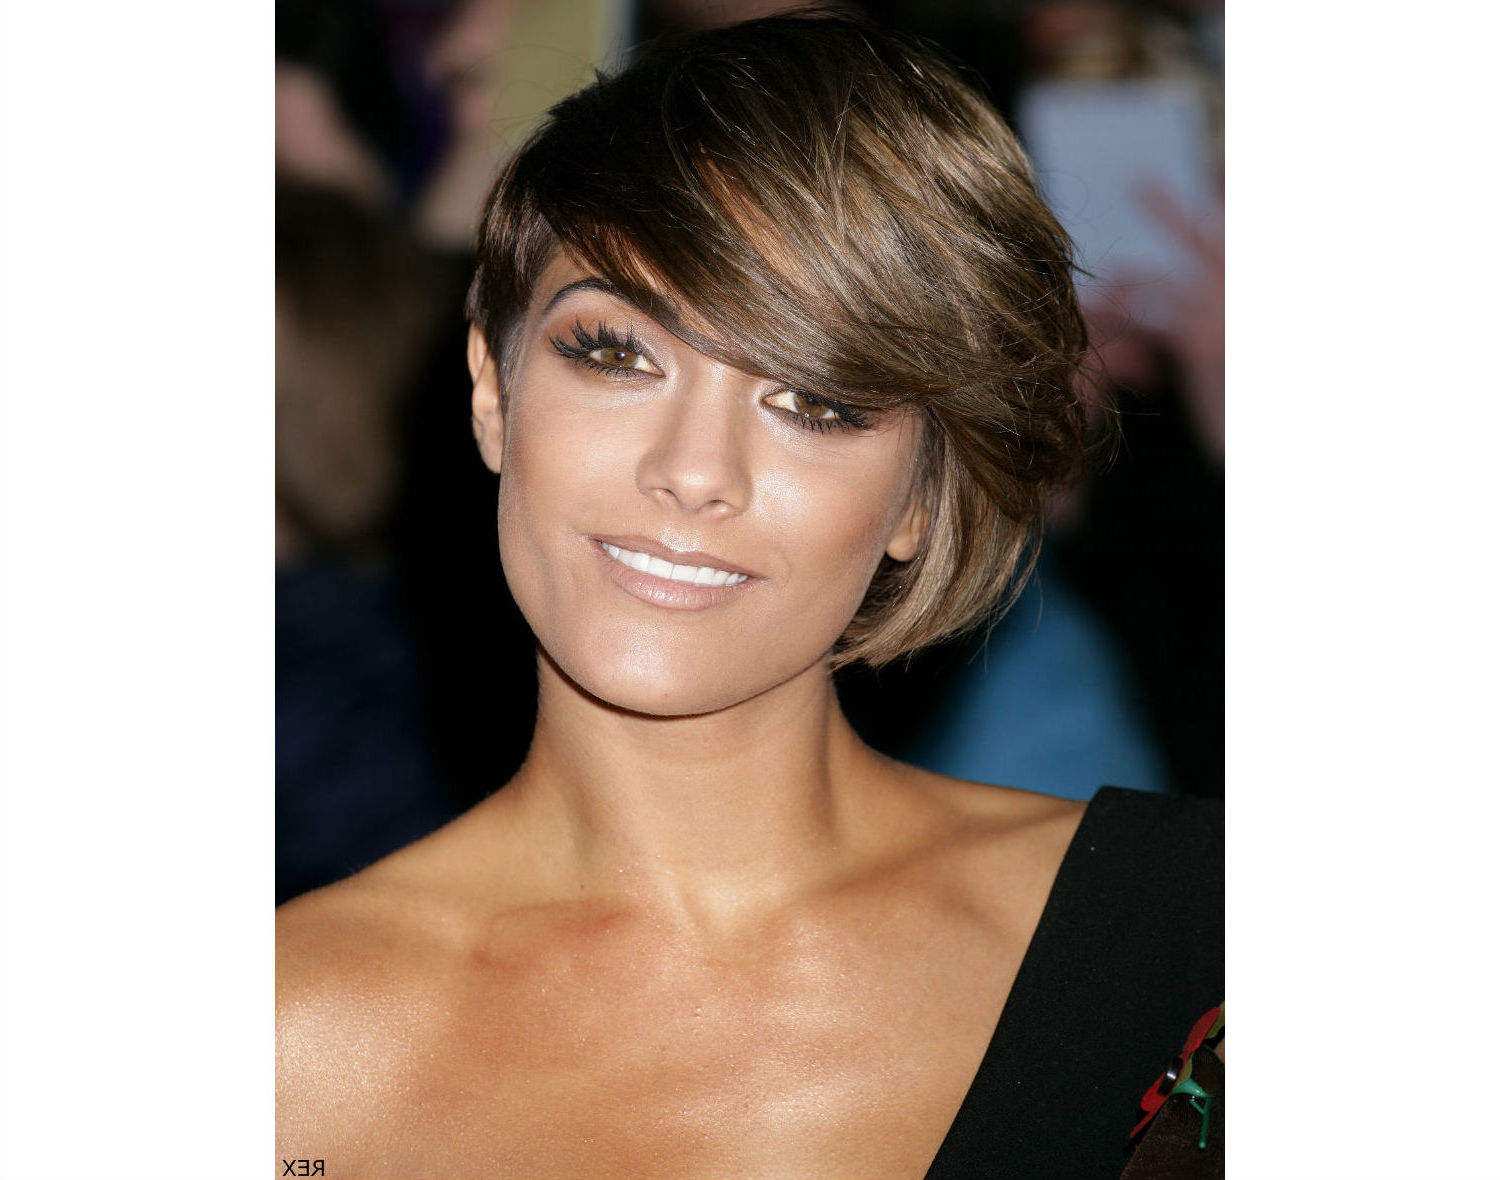 Short Bob Hairstyle For Oval Shaped Faces   Medium Hair Styles Ideas With Short Hairstyles For Black Women With Oval Faces (View 7 of 25)